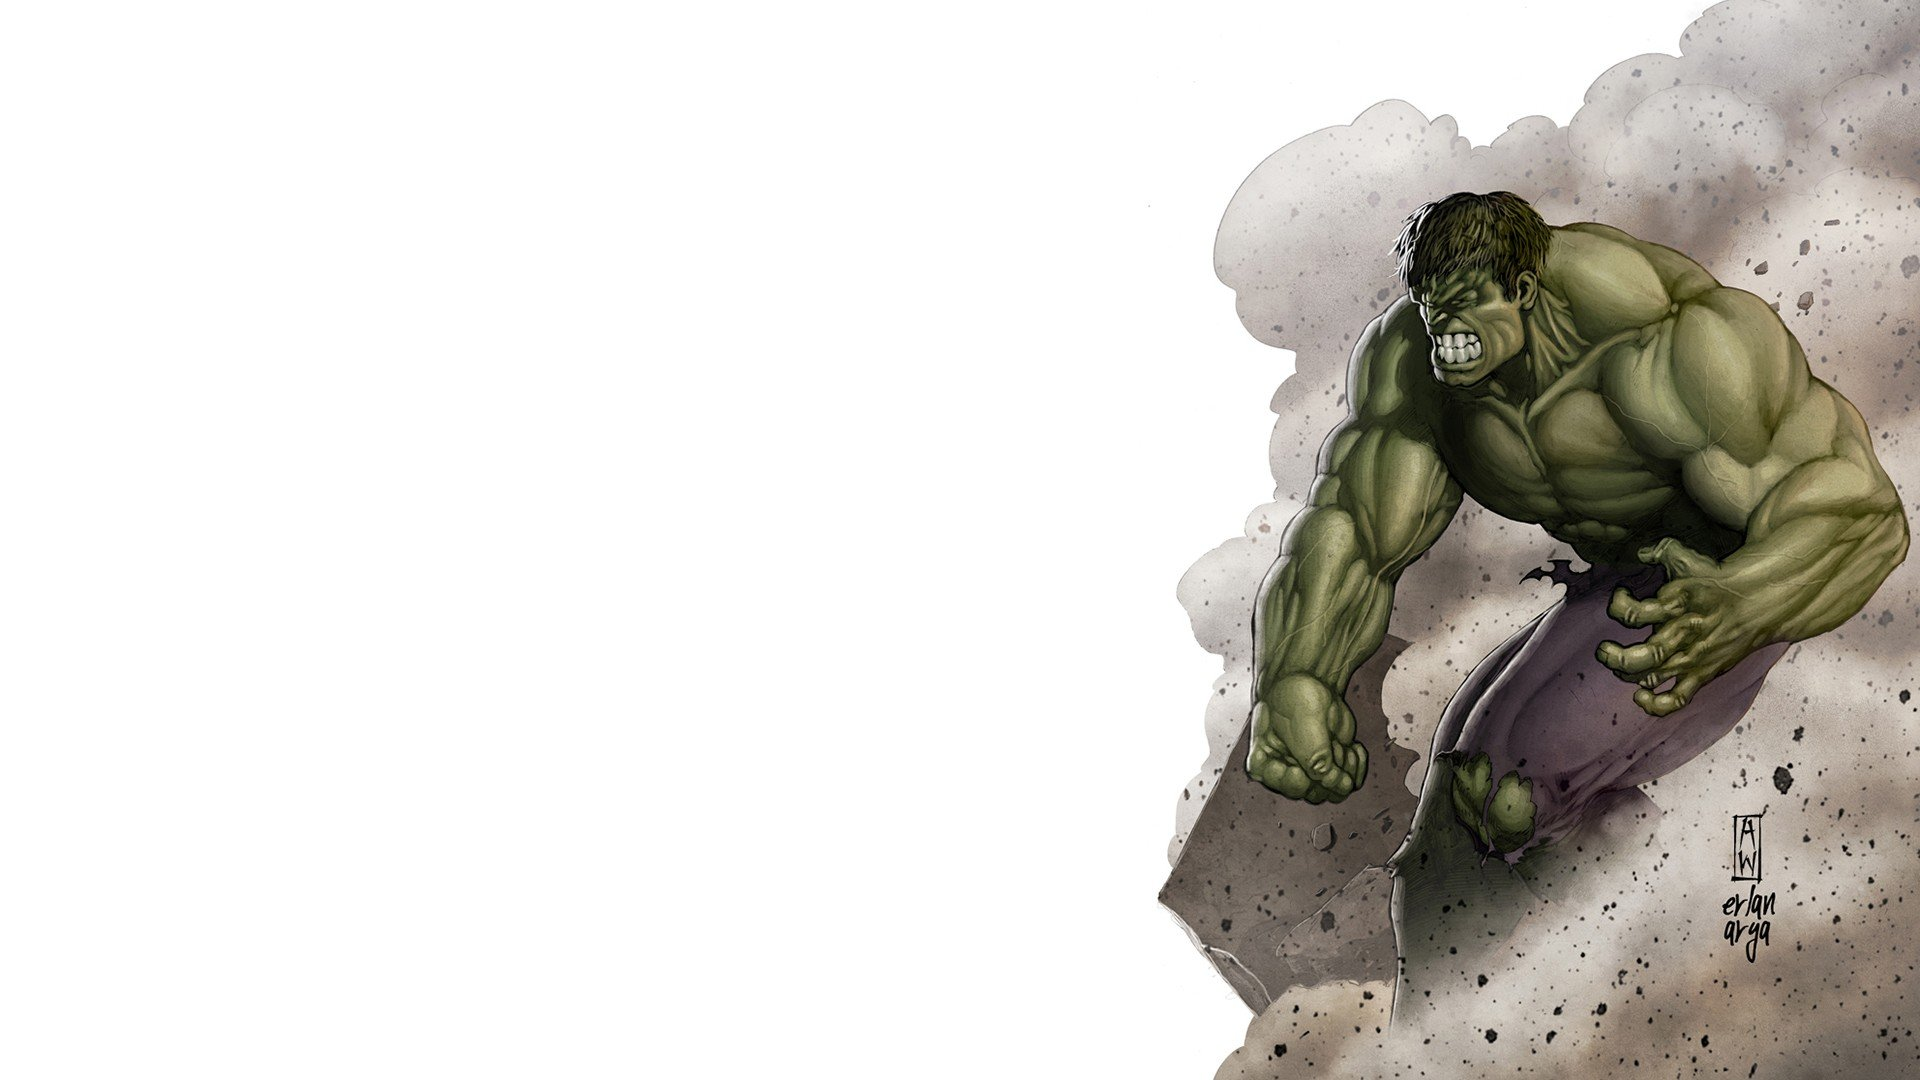 Hulk comic character Marvel Comics angry wallpaper 1920x1080 1920x1080